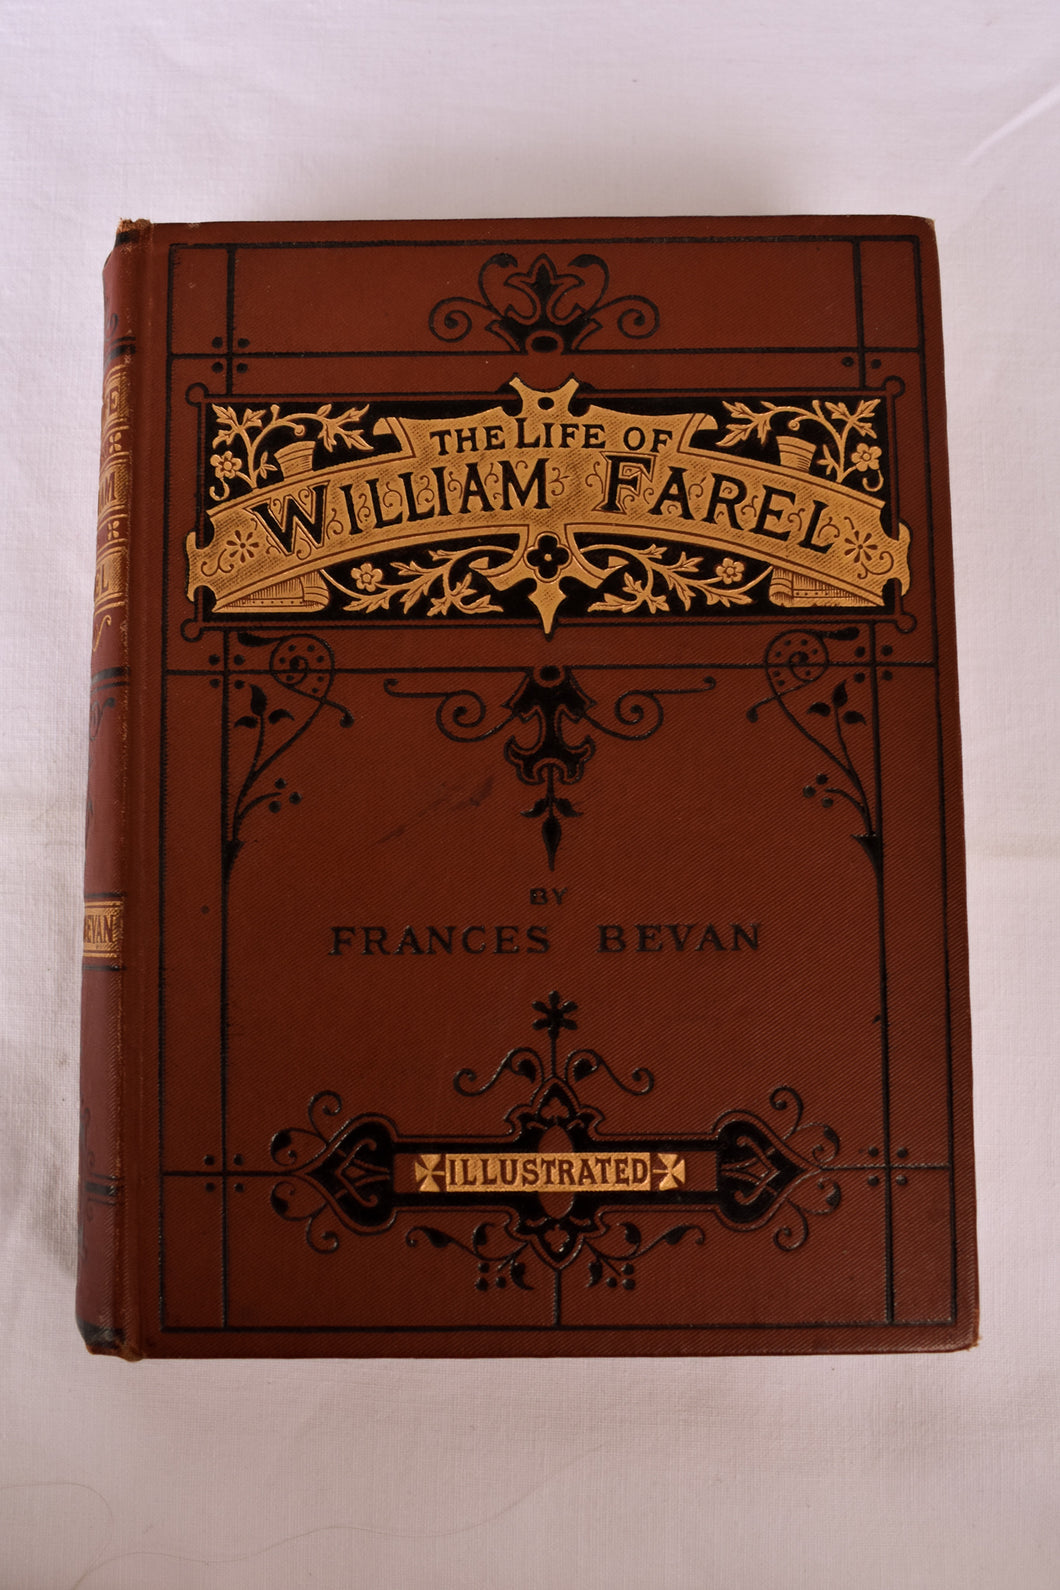 The Life of William Farel - True Stories of God's Servants